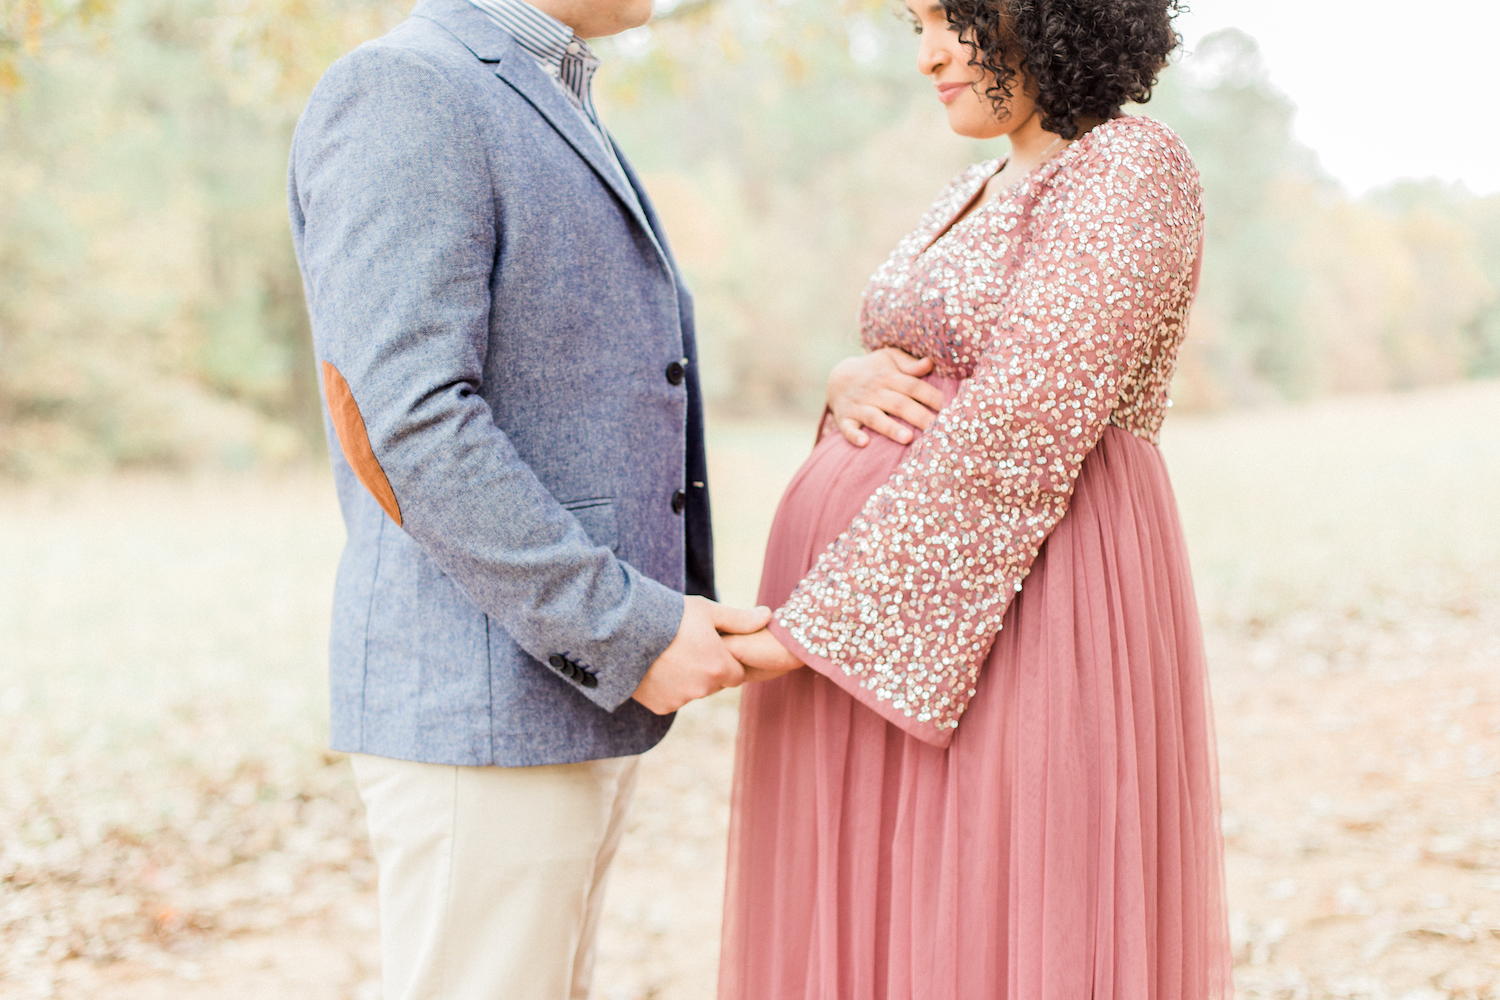 Romantic belly photo holding hands maternity session. Sparkly tulle maternity dress. Maternity session style. Atlanta Fine Art Maternity Photographer.